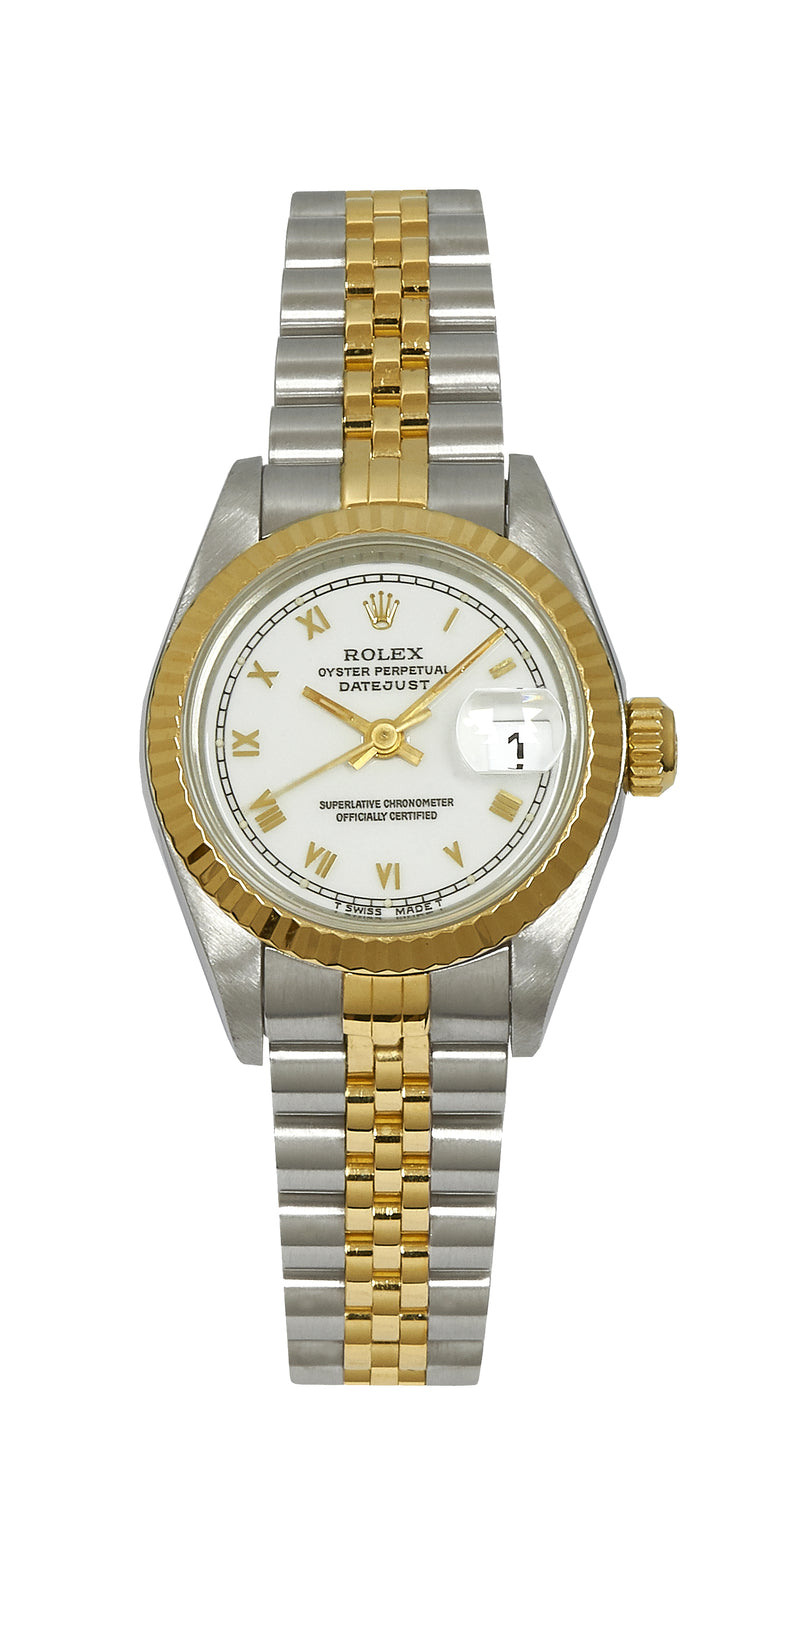 Rolex Ladies Datejust Steel & Gold, White Roman Numeral Dial. Ref: 69173